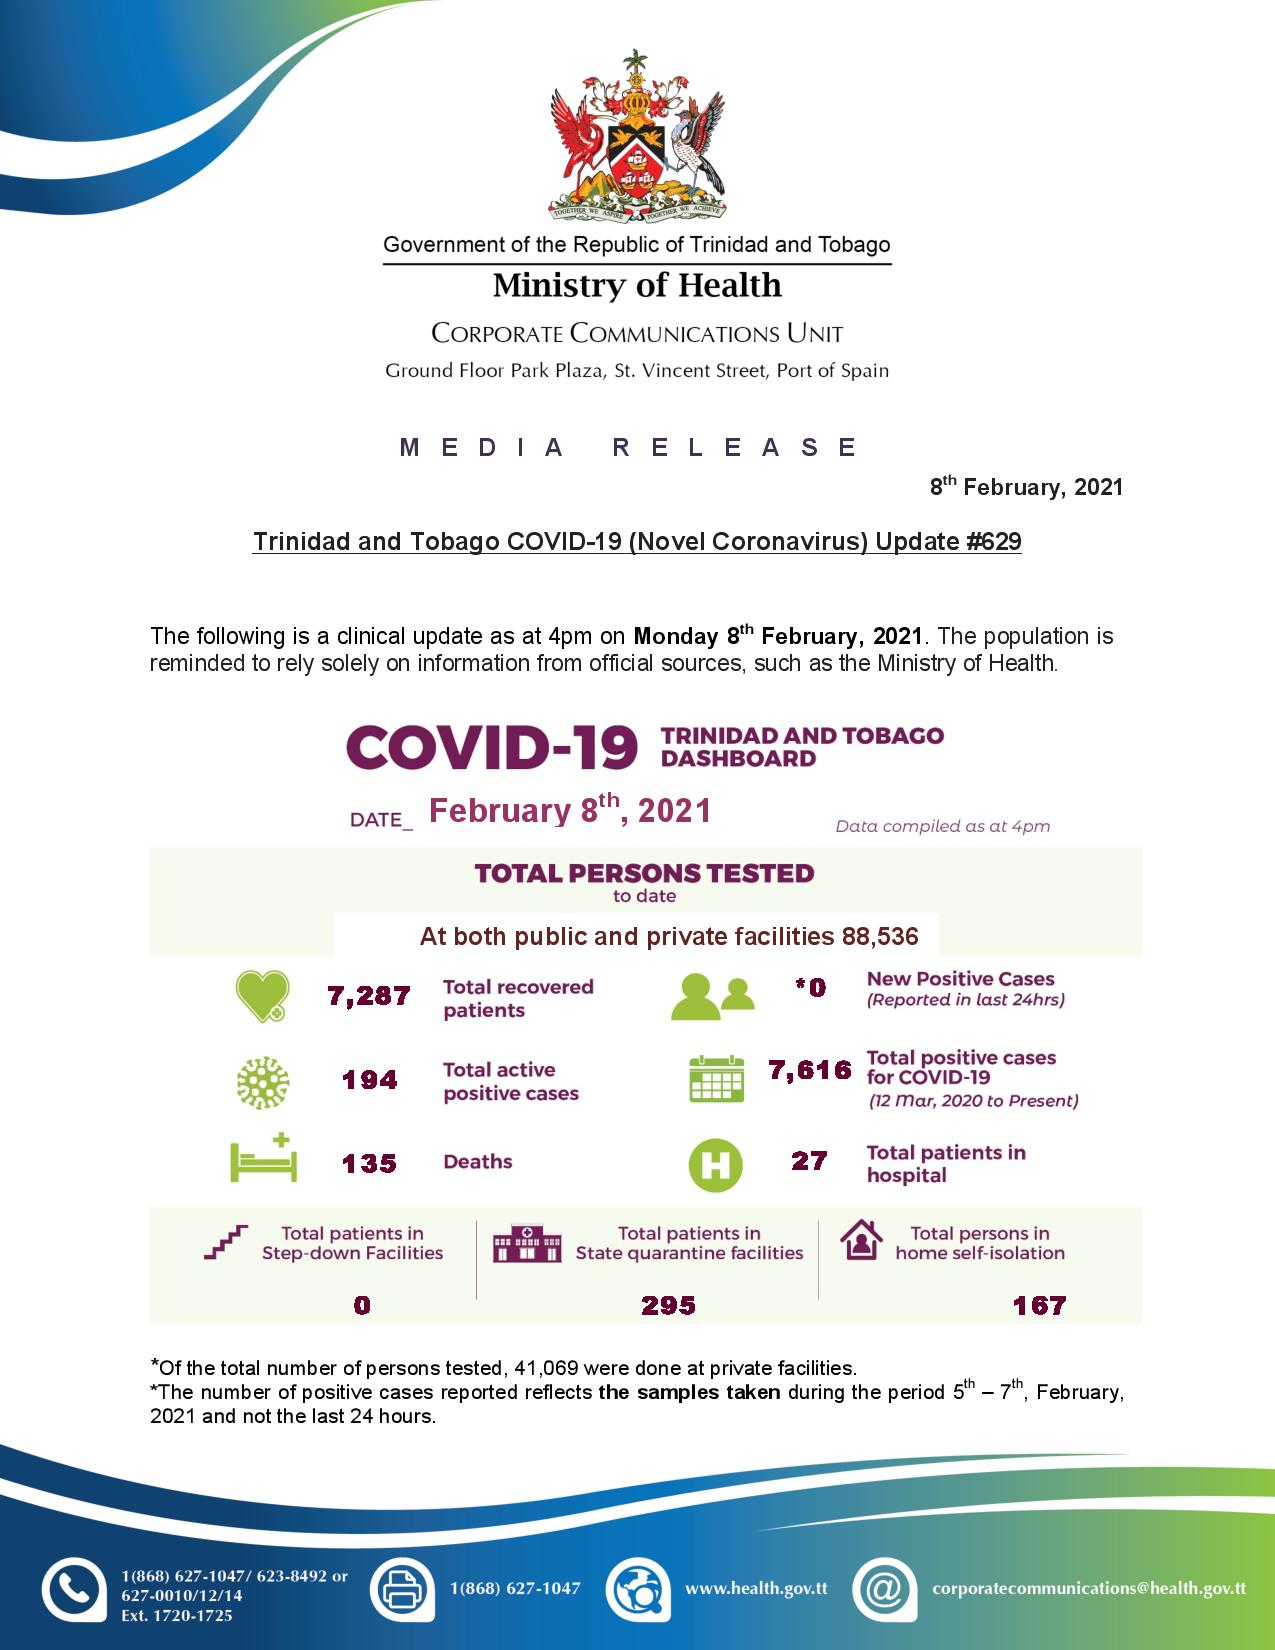 COVID-19 UPDATE - Monday 8th February 2021